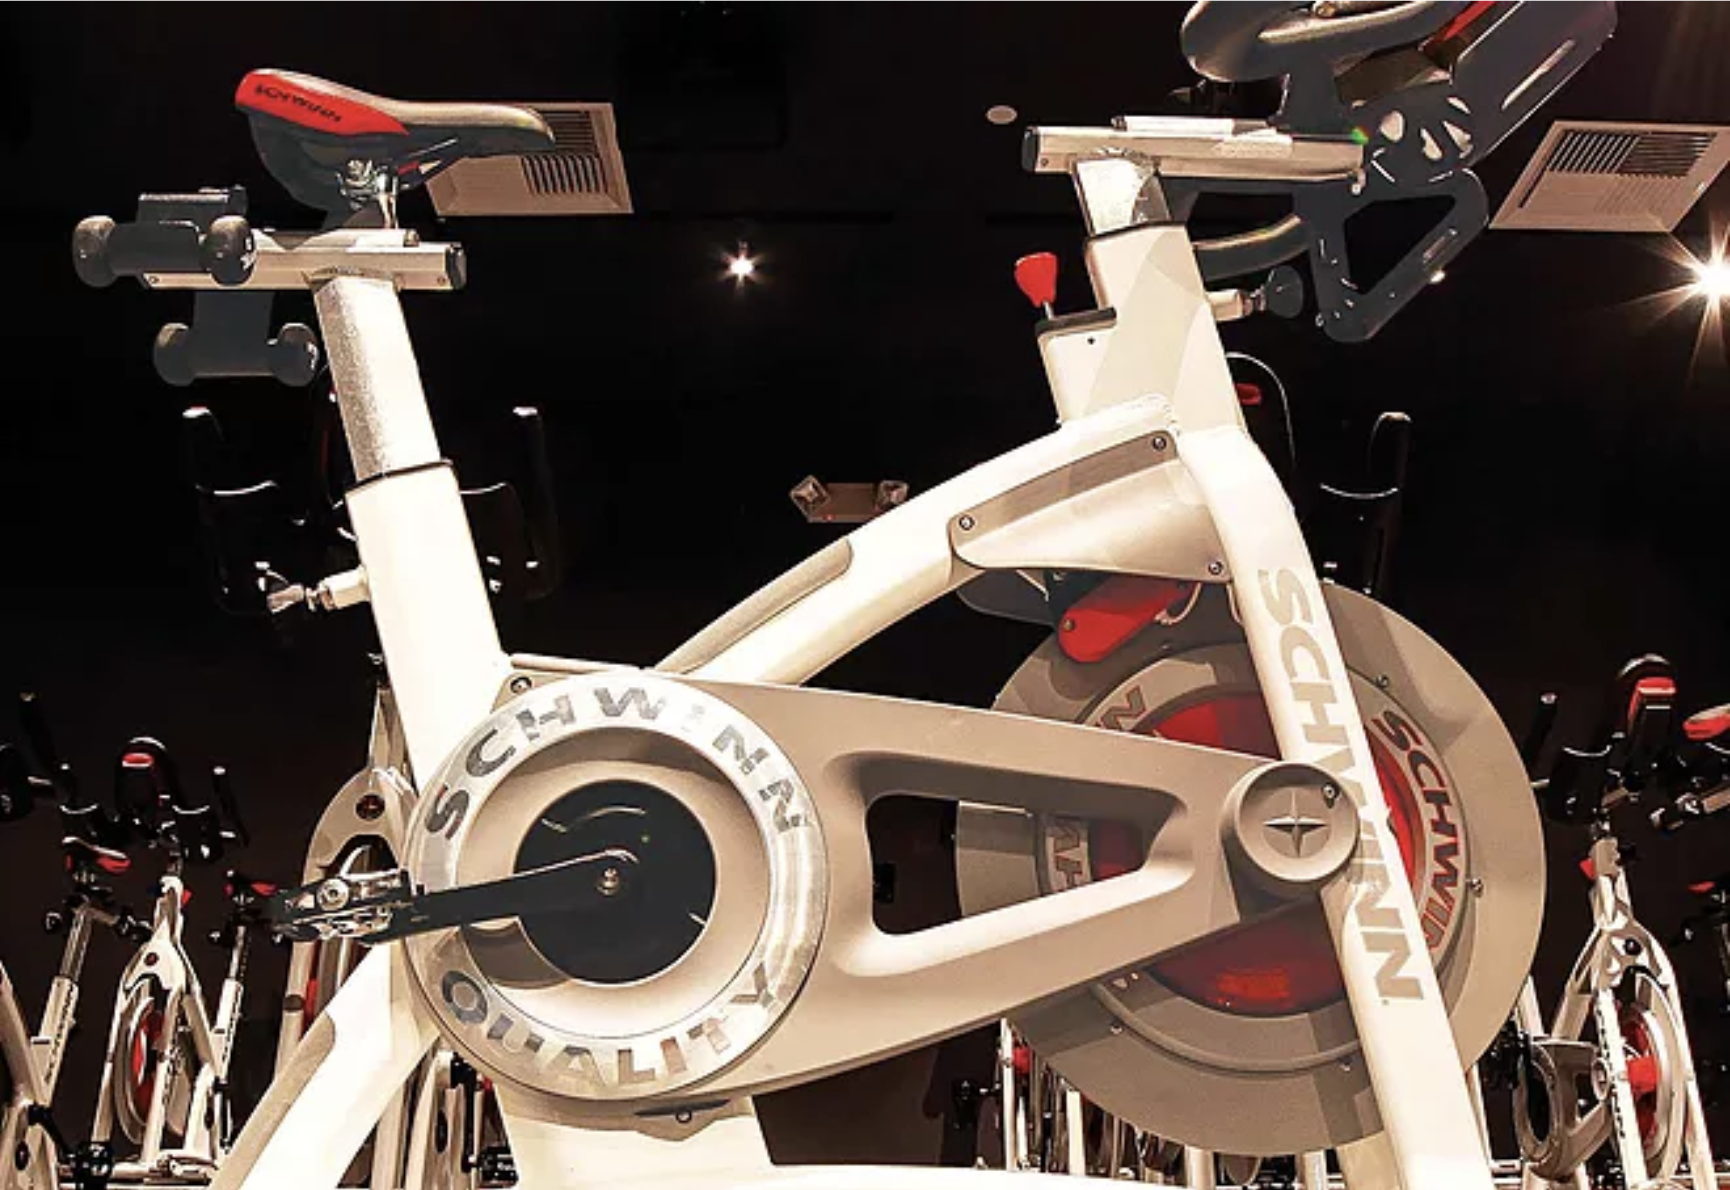 Boston Magazine's Best of Boston 2015 - B/Spoke, with its intense 45-minute classes, arm workouts, and free shoe rentals, gets top honors in a competitive category. The downtown location is a hit with commuters and city dwellers alike, and the top-notch amenities (read: Aesop products, open rides) set it apart.